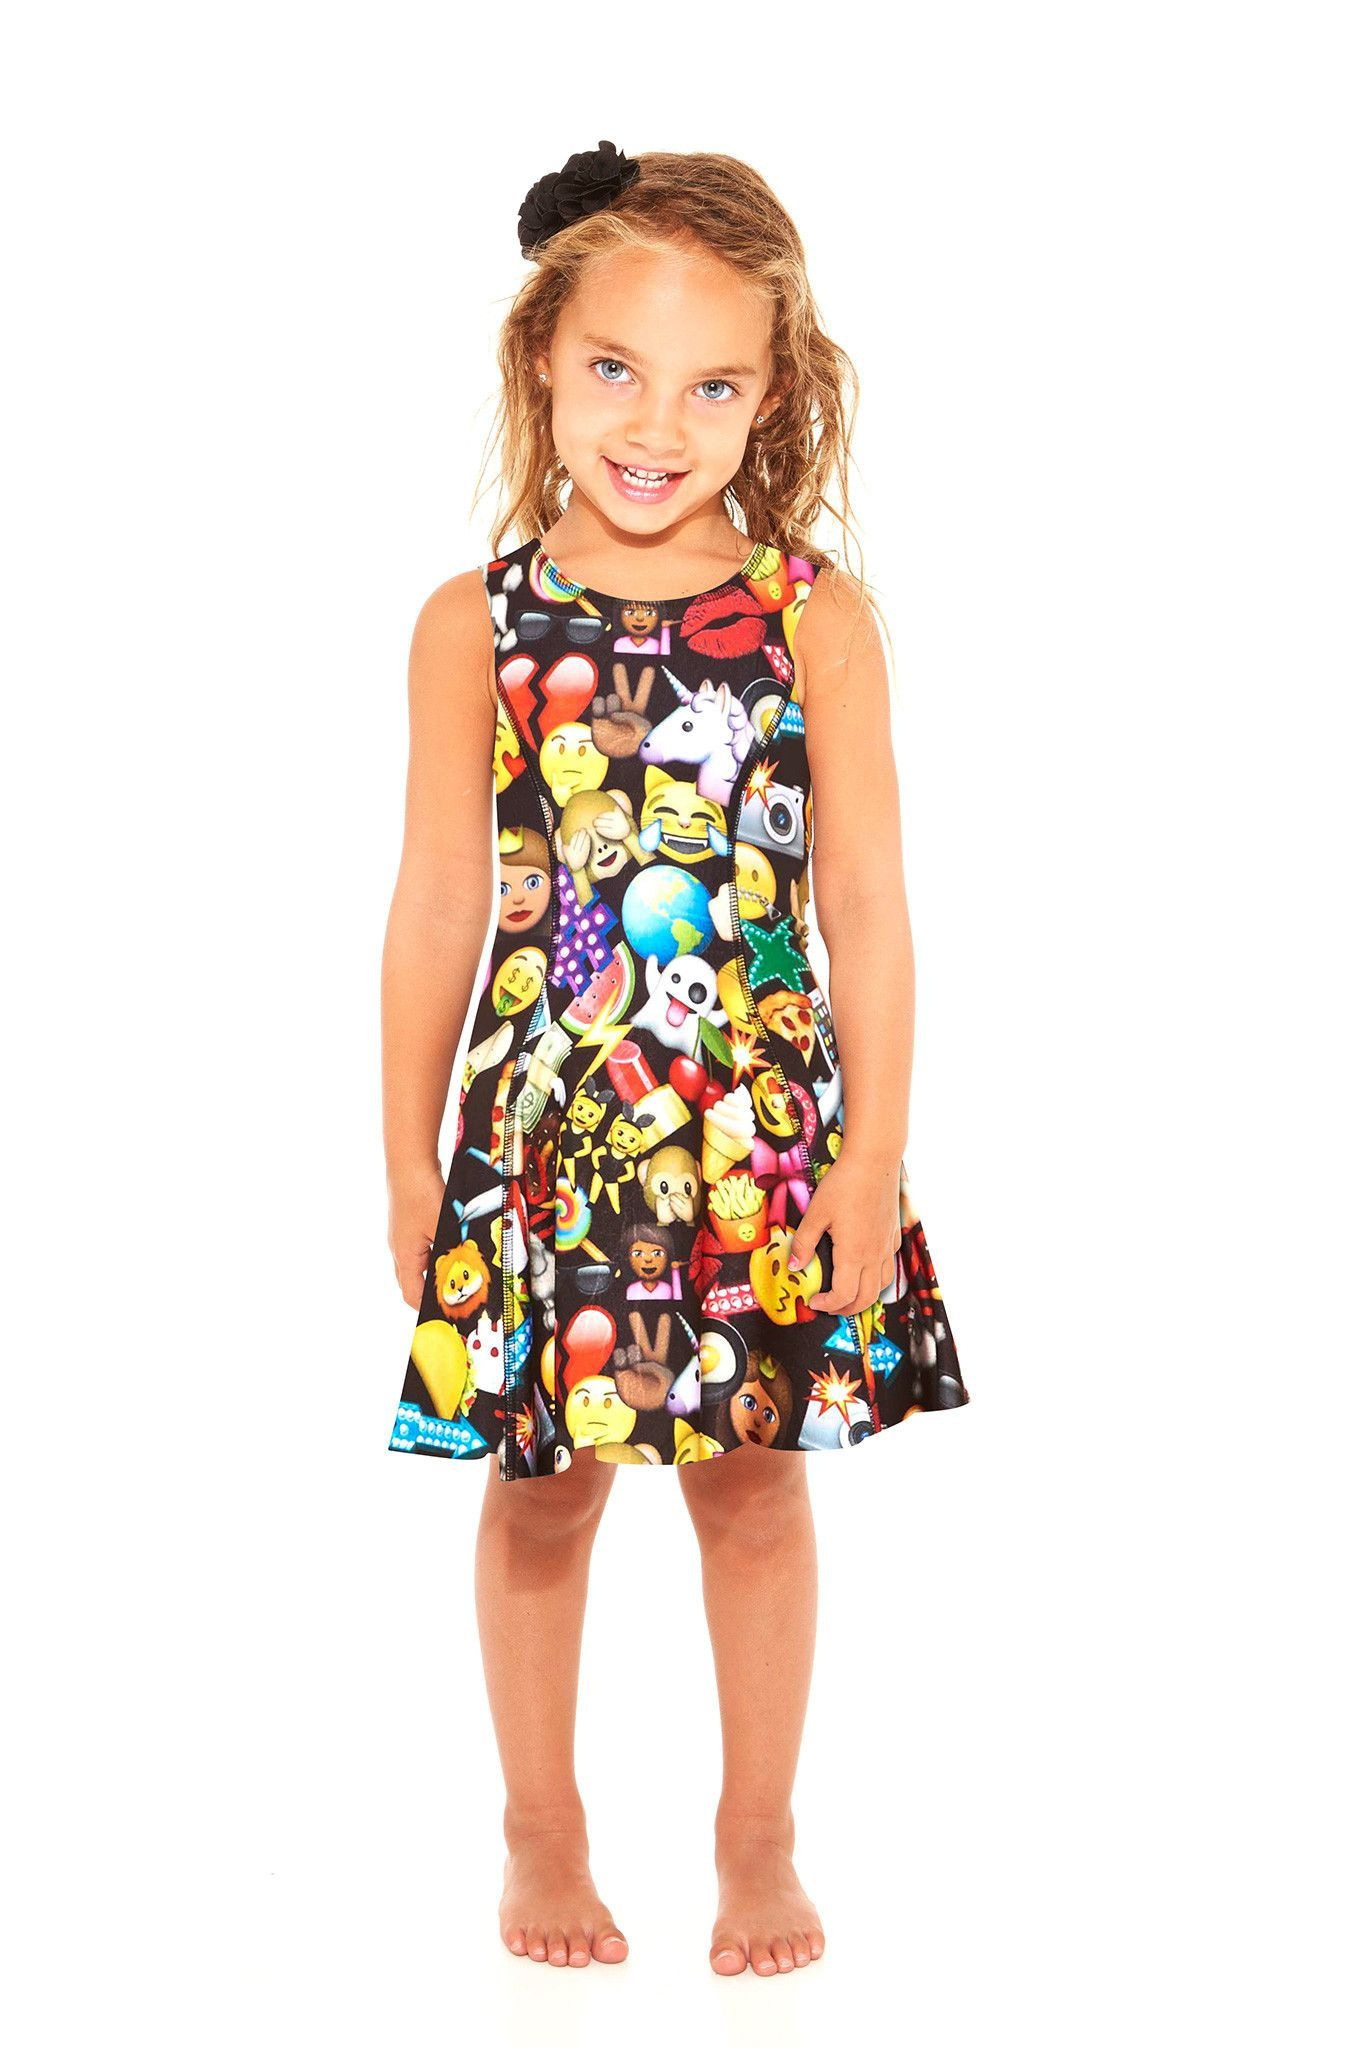 7ae9f021ac16e Kids 100% Emoji Skater Dress | emojis | Dresses, Skater dress, 100 emoji